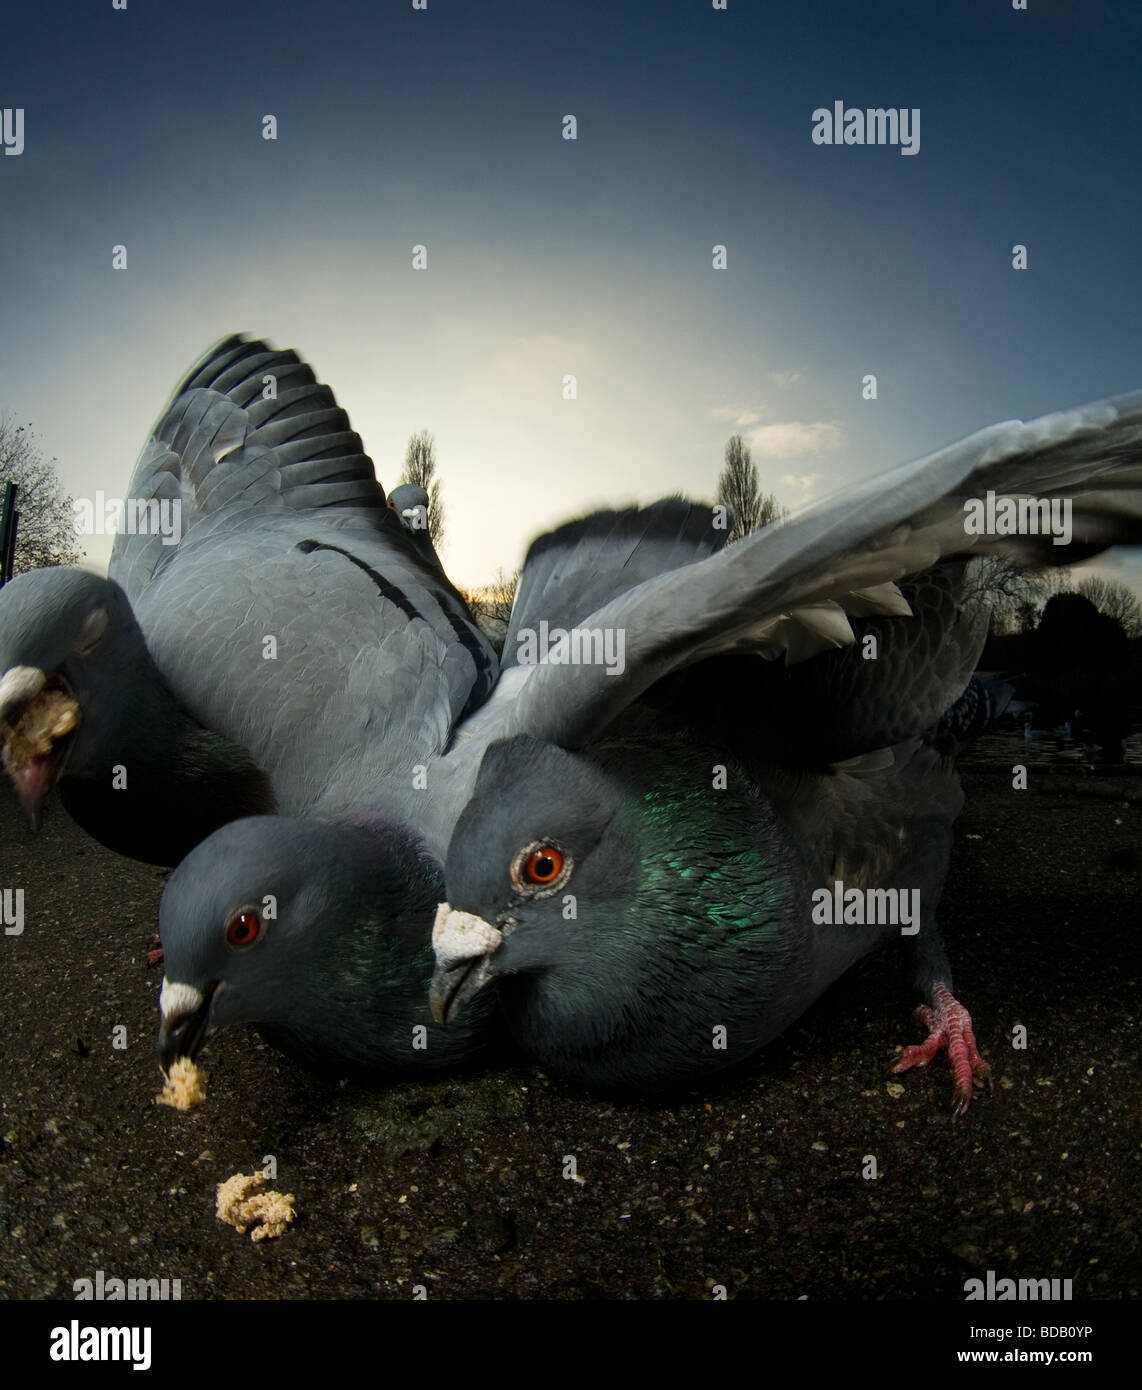 Pigeons lunging for food, London - Stock Image